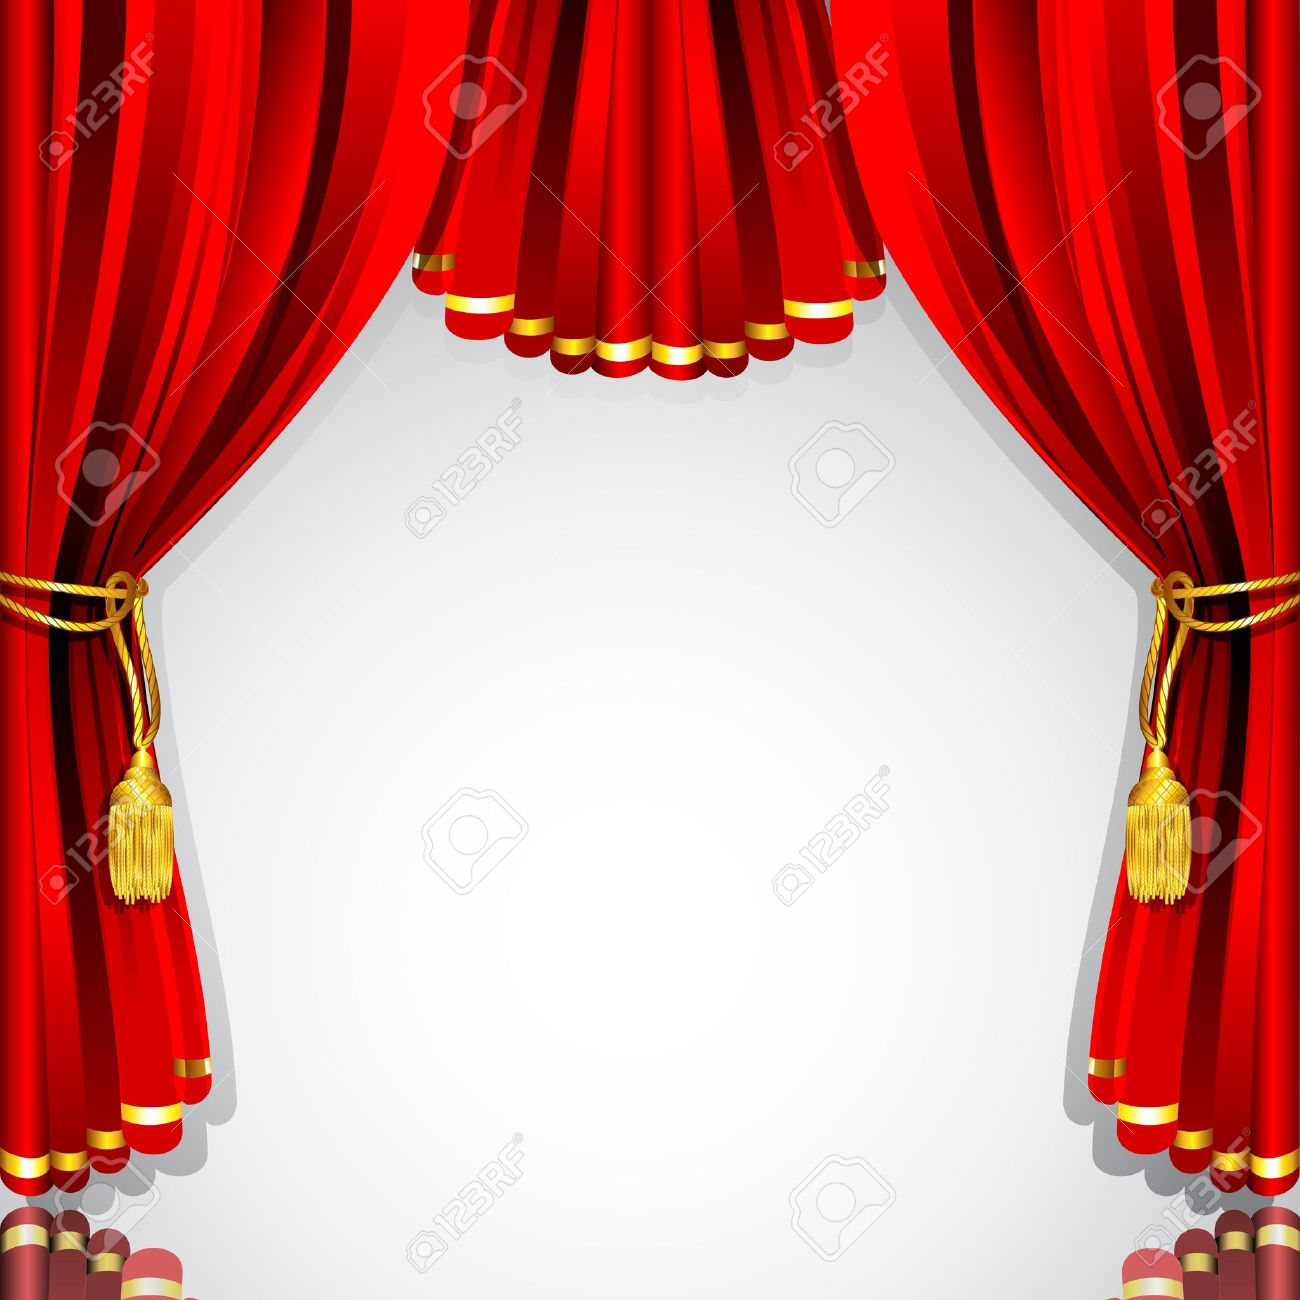 Free coloring pages of stage curtains - Theater Curtain Illustration Of Red Stage Curtain Drape On White Background Illustration